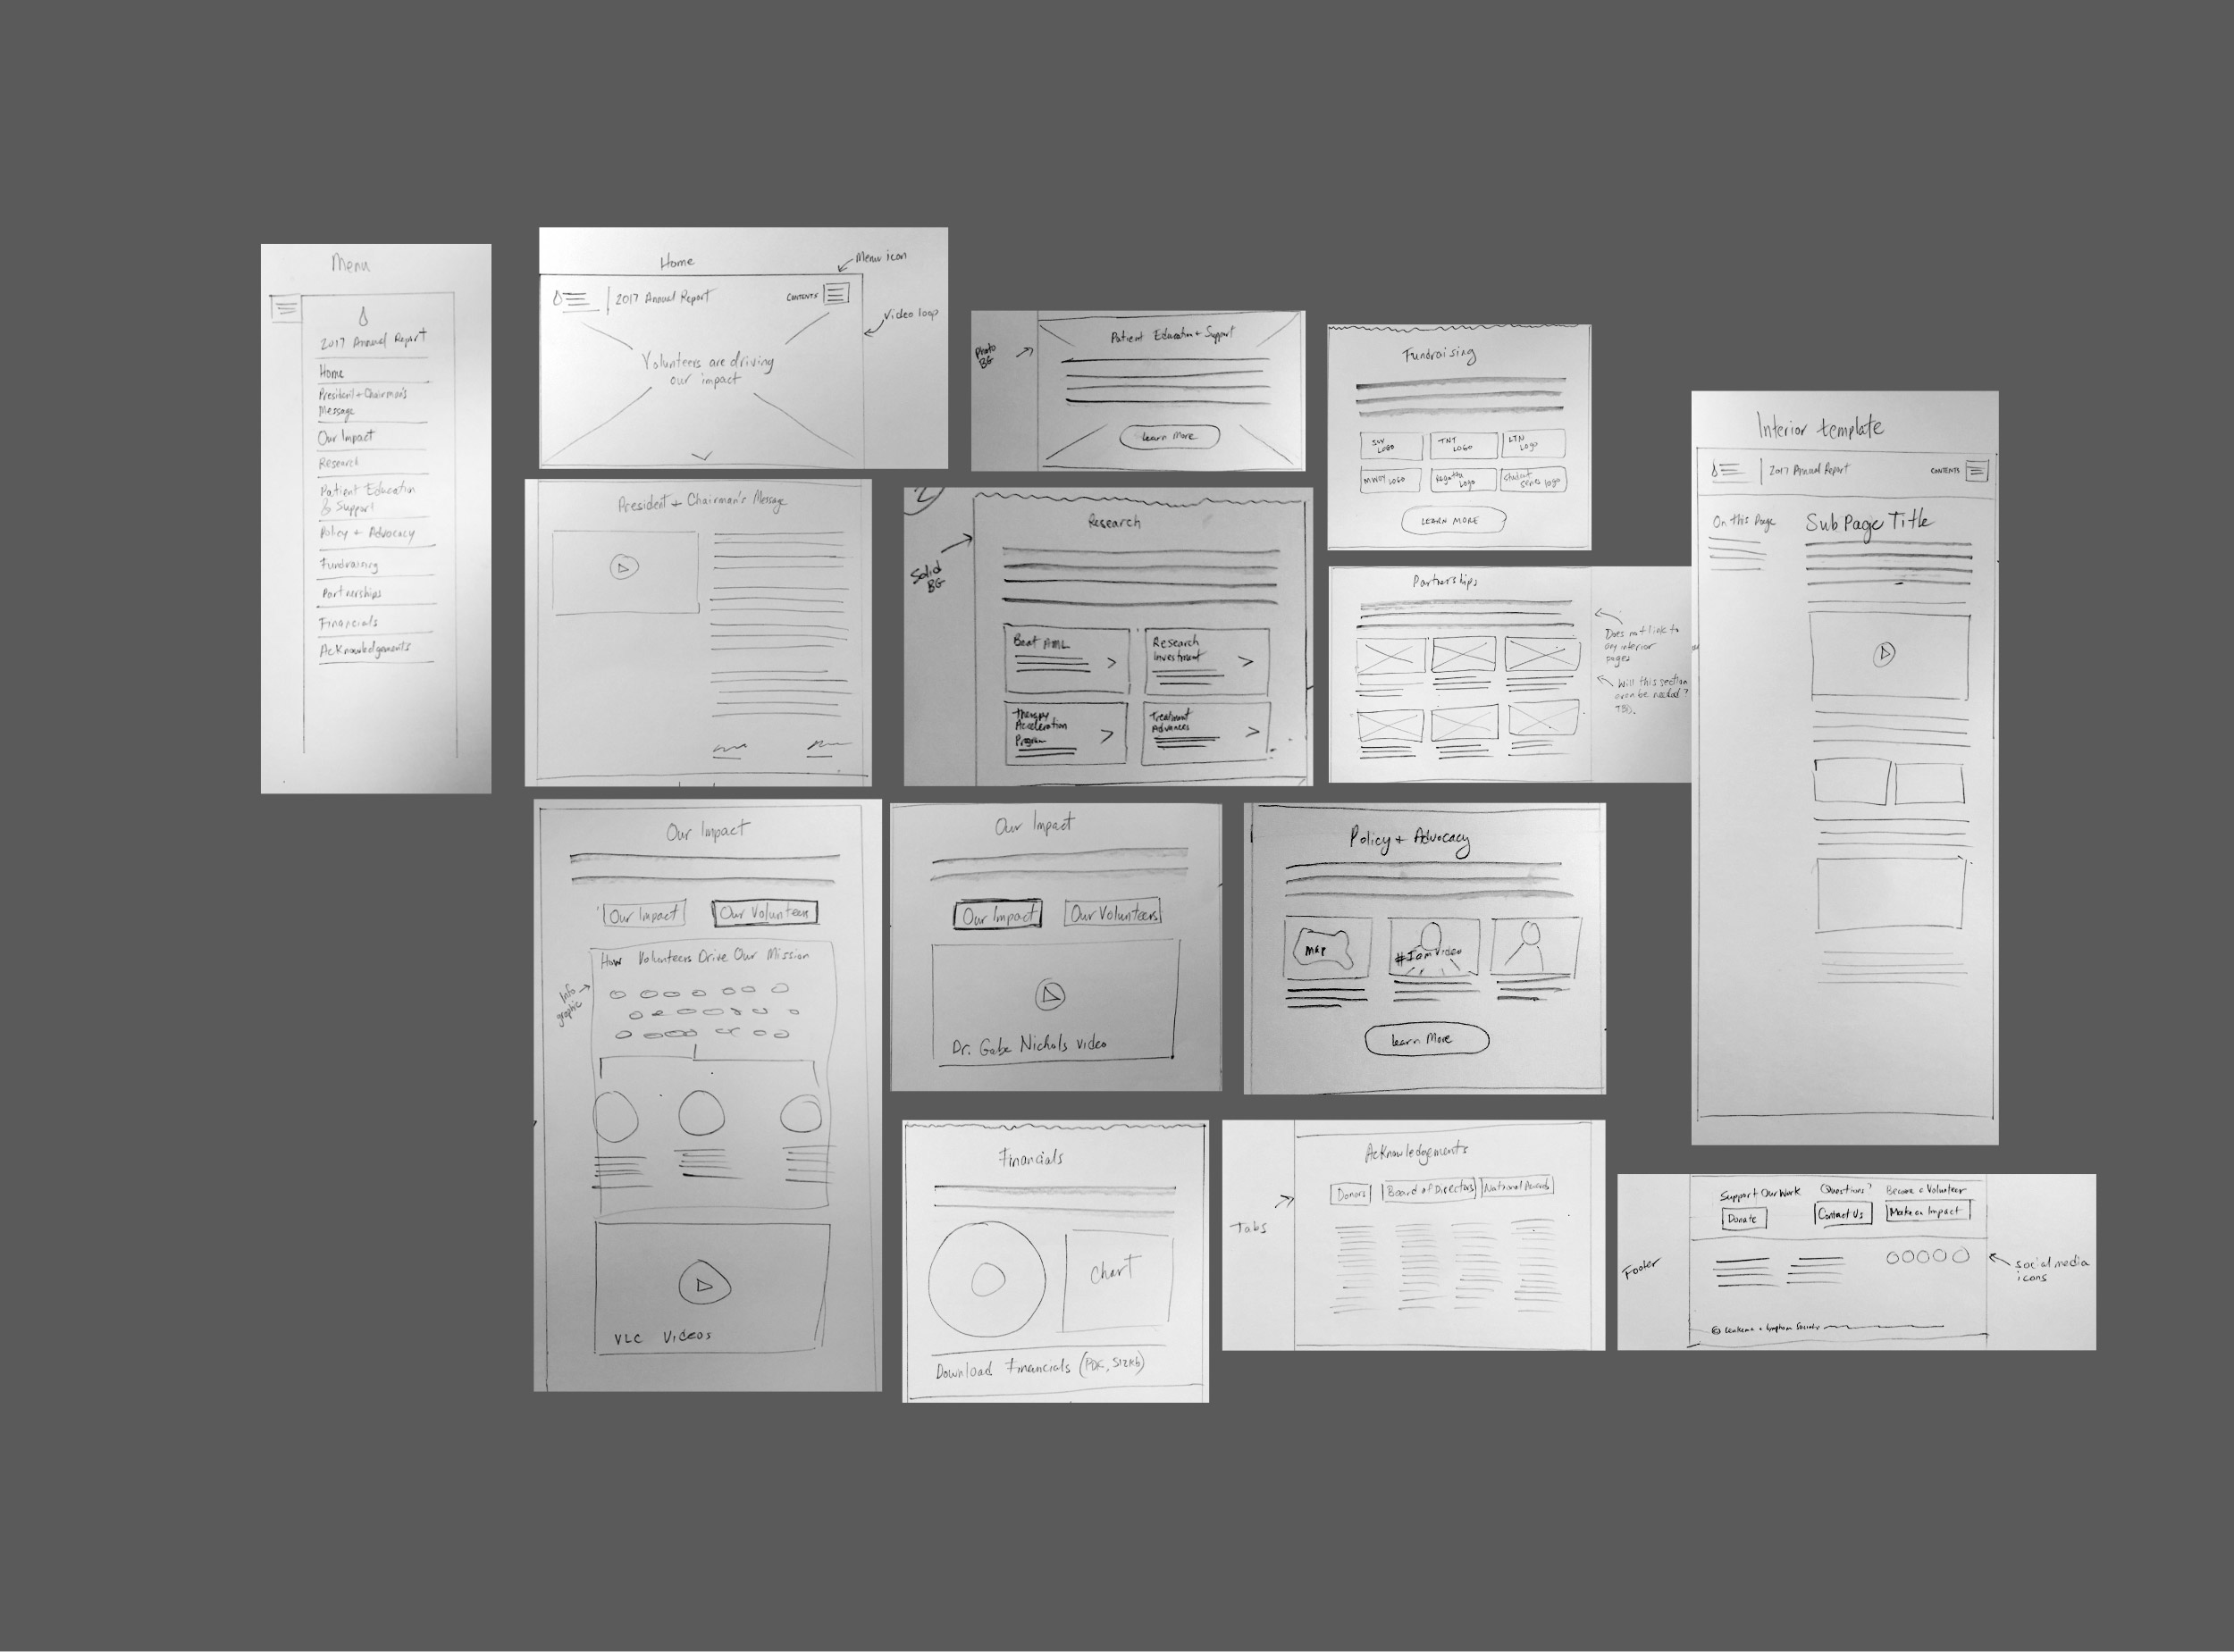 LLS Digital Annual Report wireframe sketches